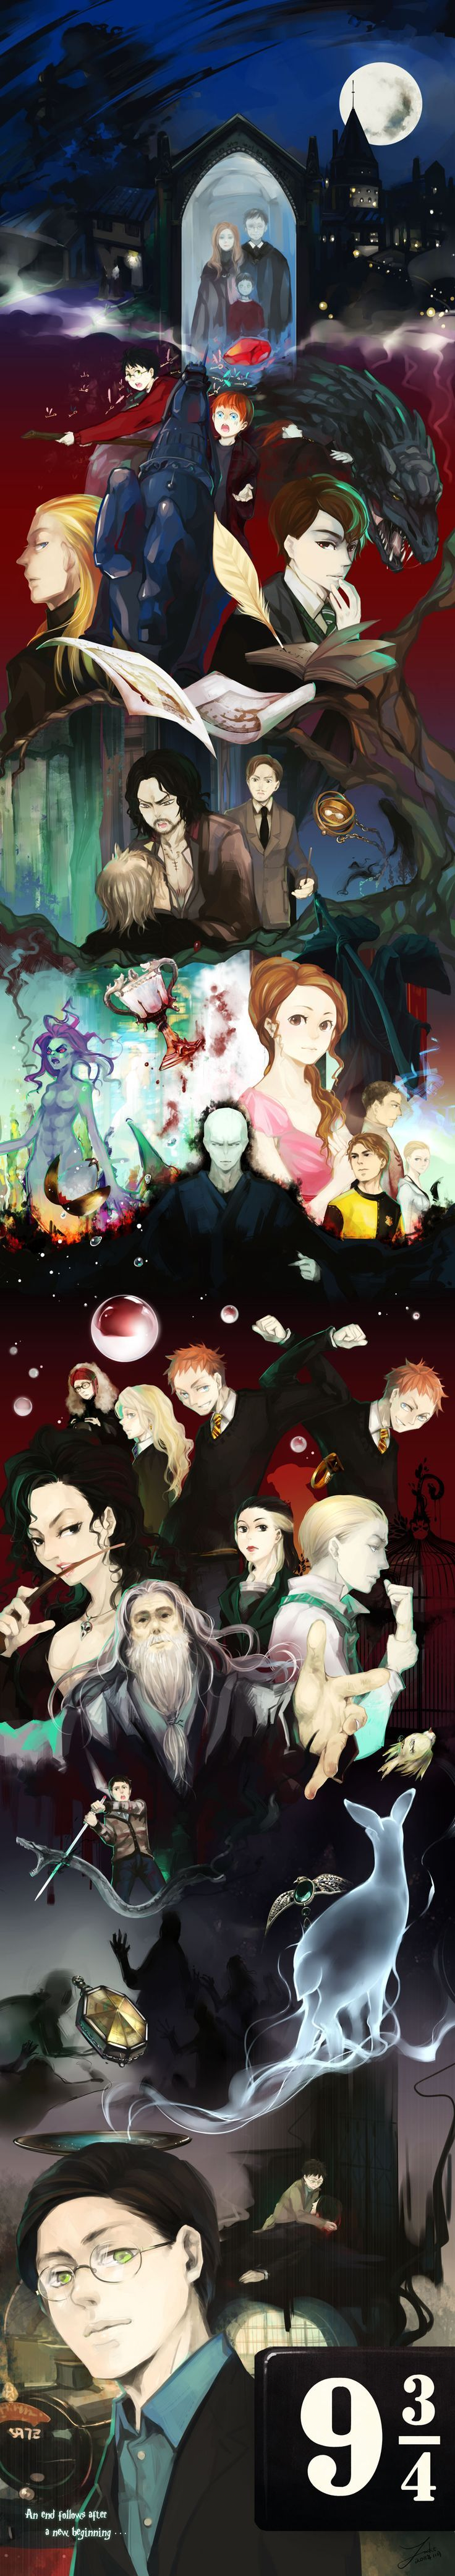 337 best images about harry and ginny on pinterest harry birthday - The Harry Potter Cast Reimagined As Anime Characters